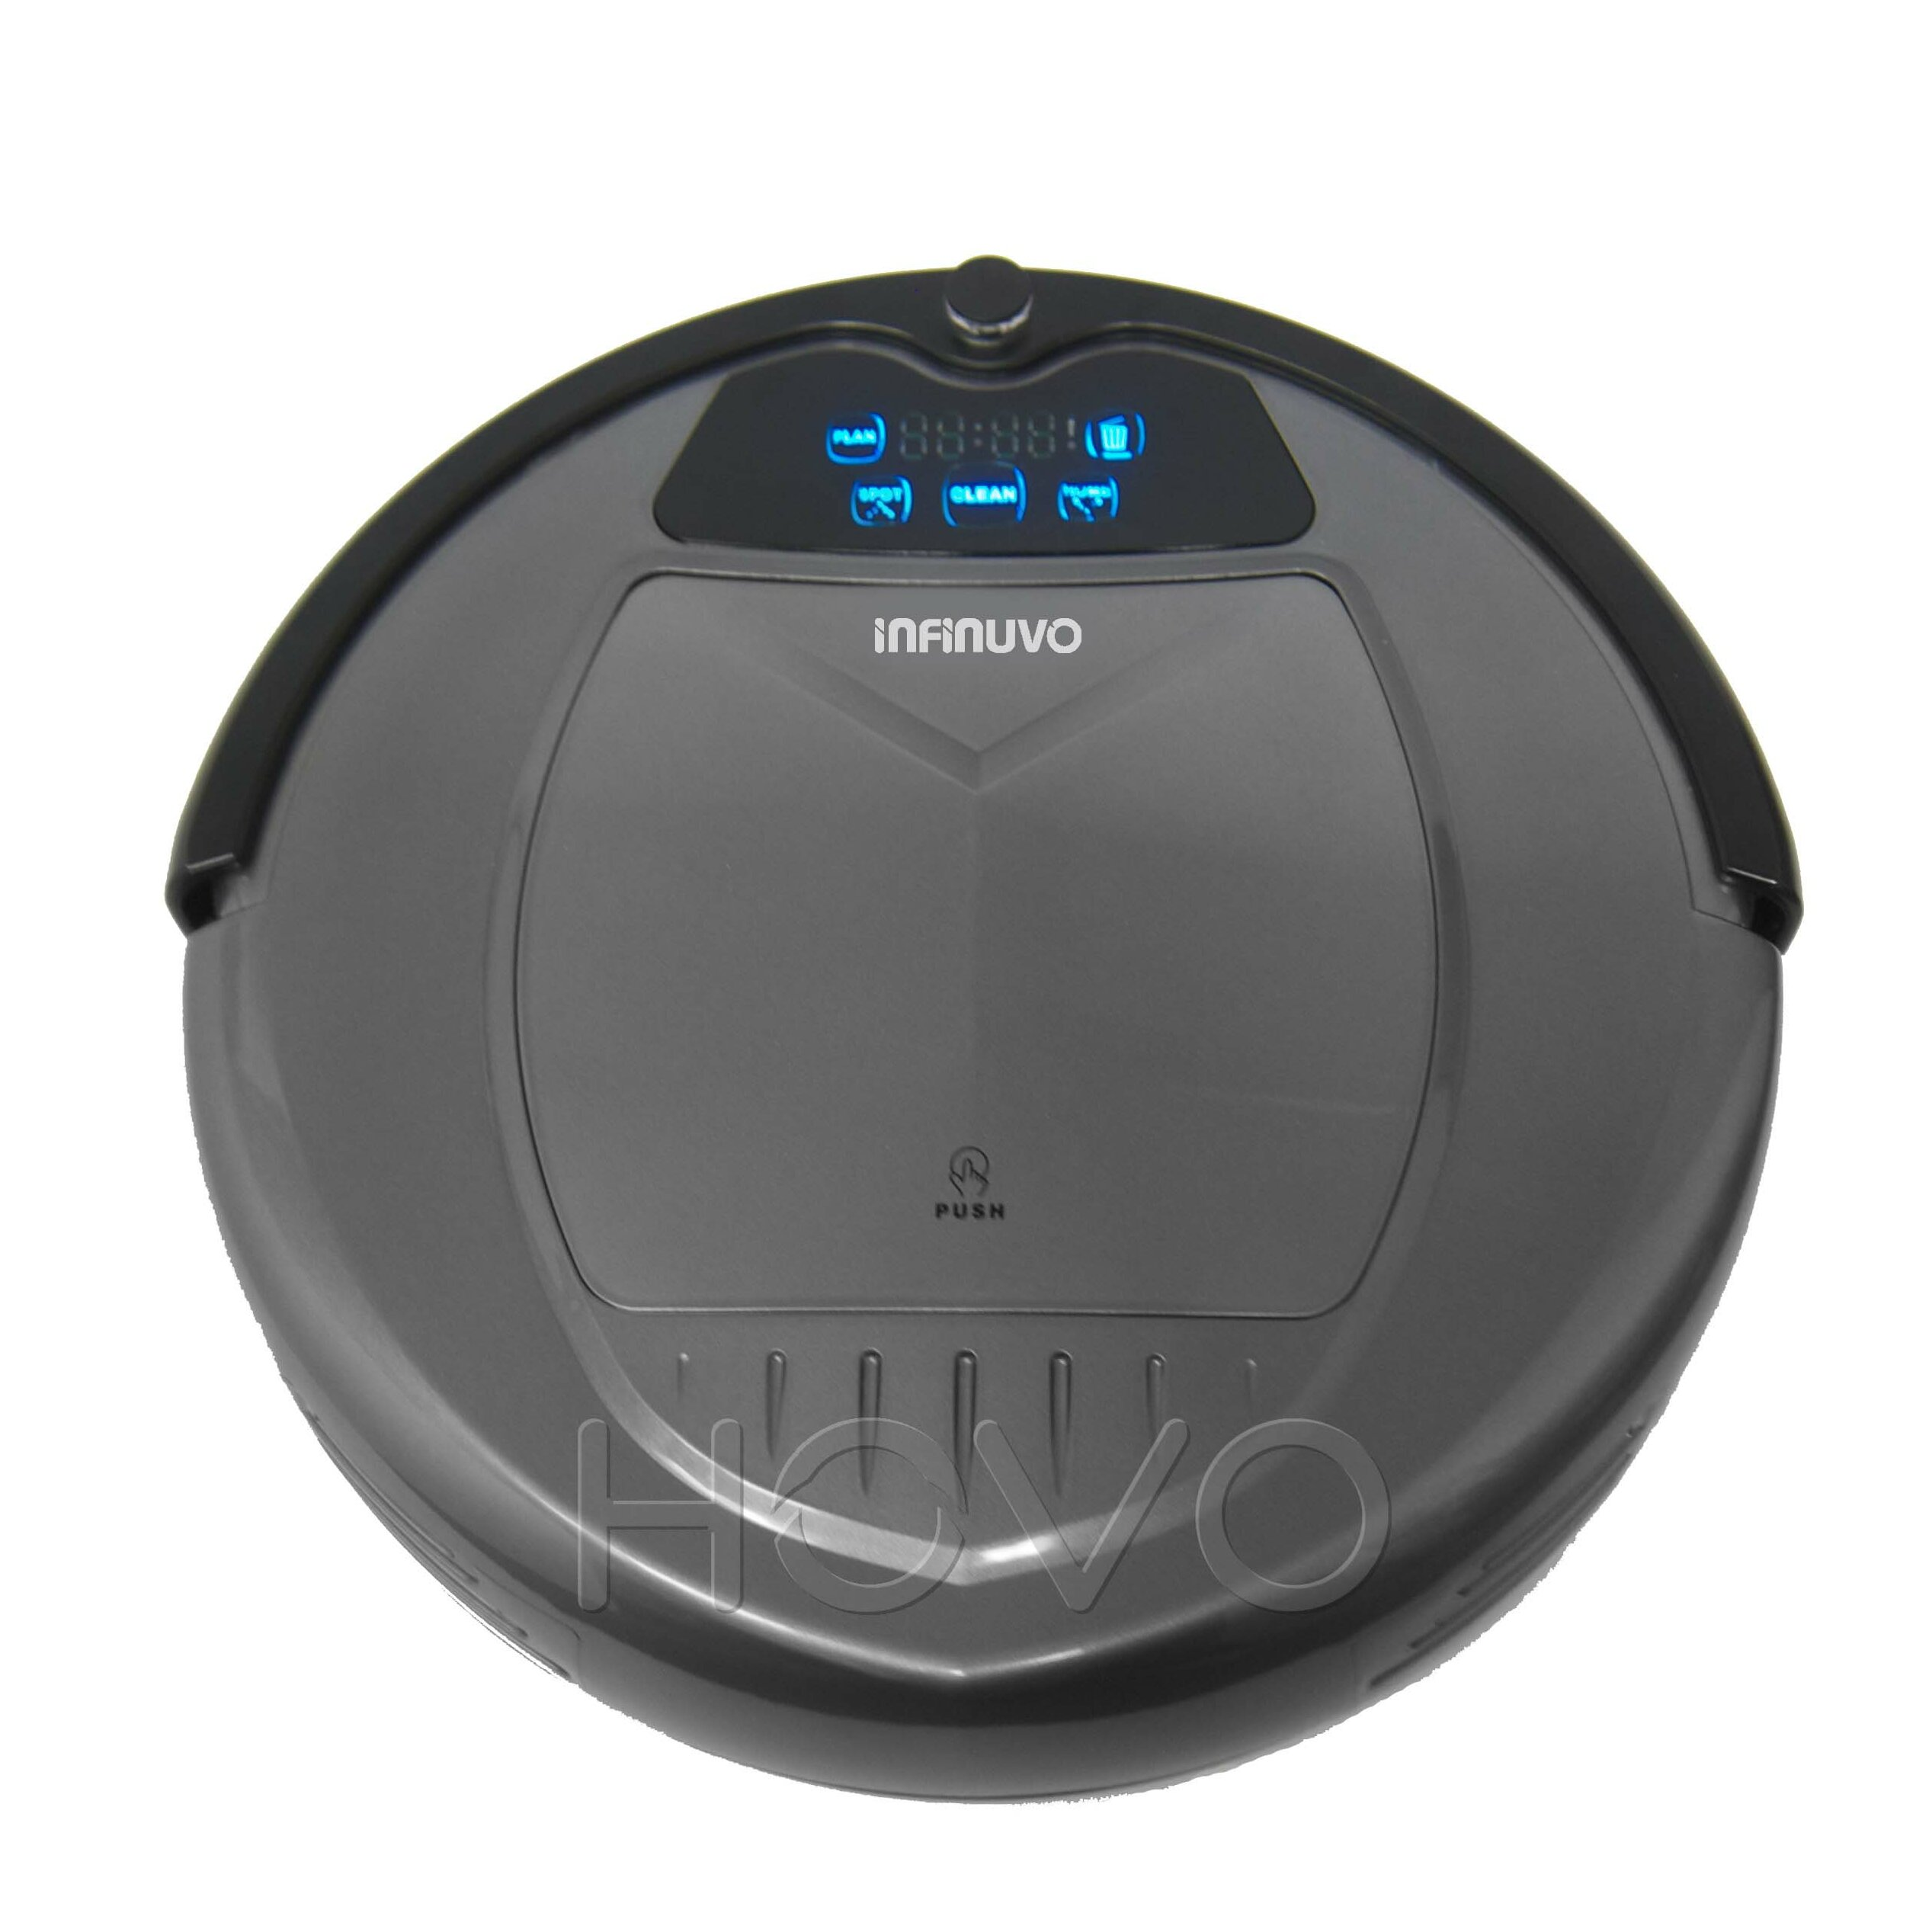 Infinuvo robotic vacuum cleaner reviews for Robot sweepy